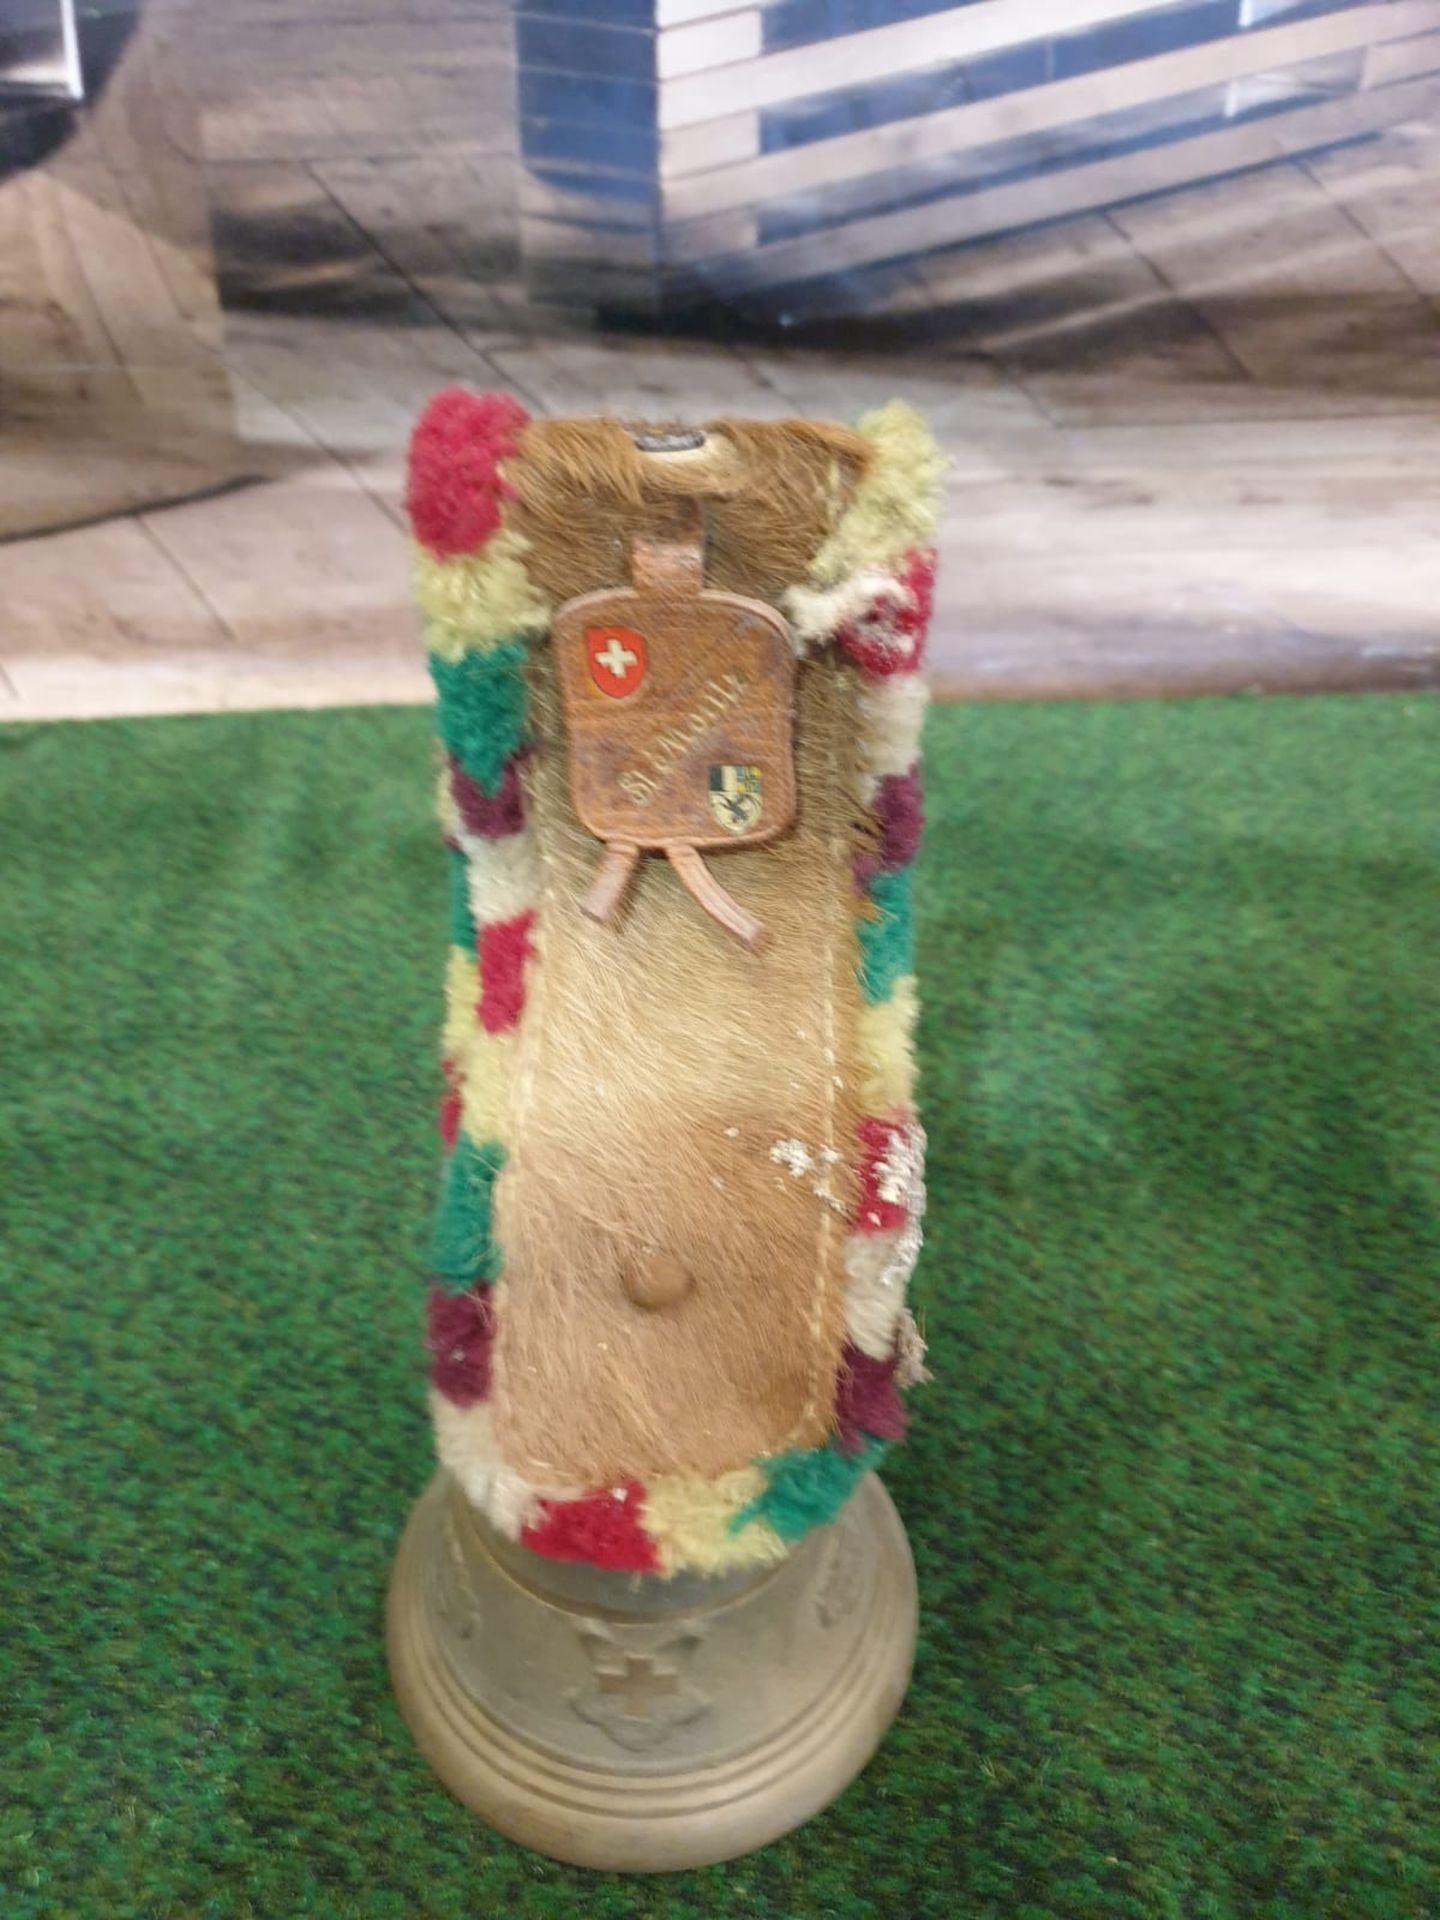 A Swiss bronze 'Glocken' style cow bell. The bell cast with flowers and the arms of Switzerland, the